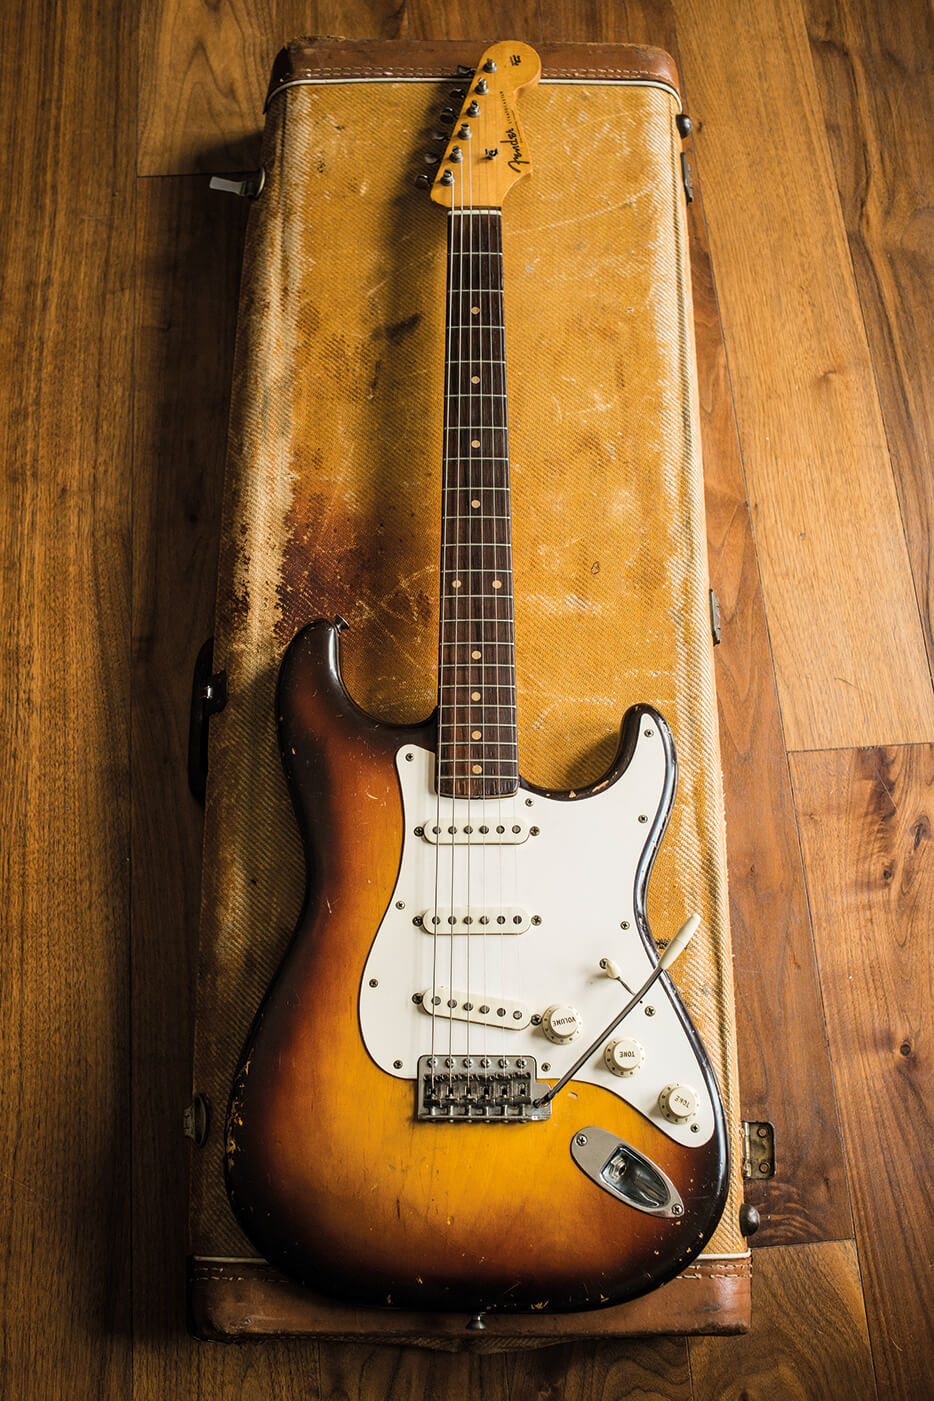 Fender vintage stratocaster sunburst finish